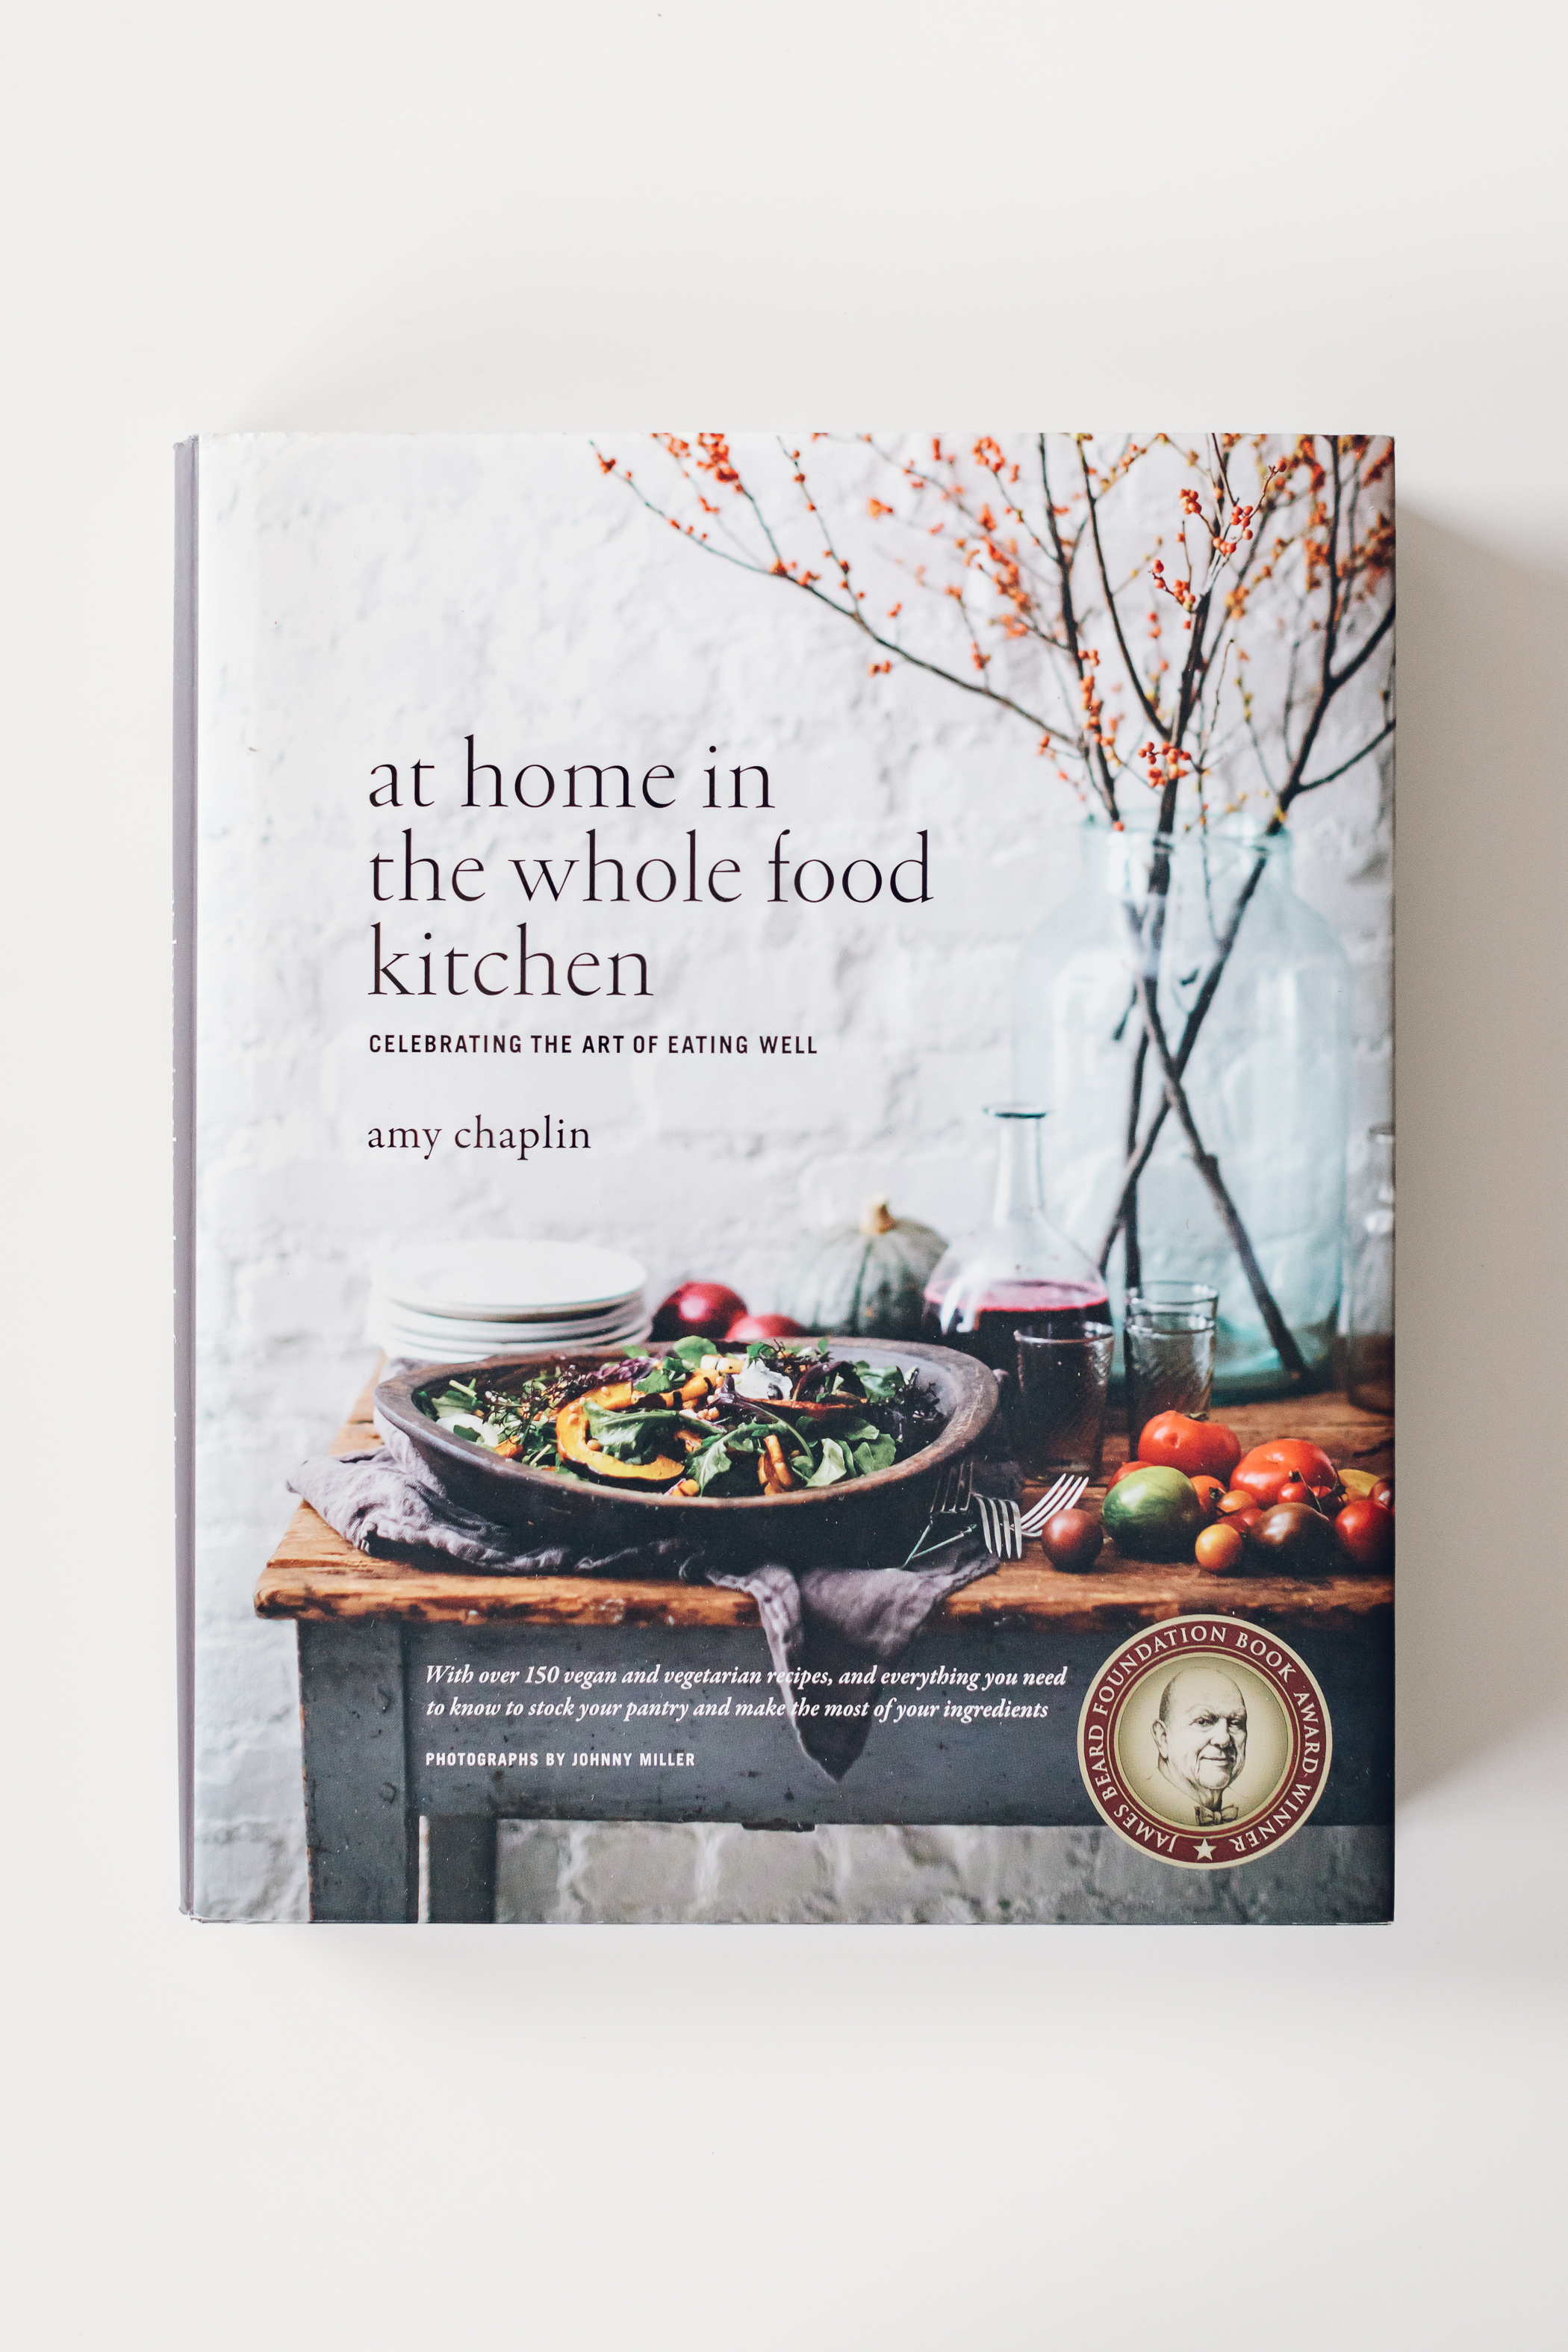 At Home in The Whole Food Kitchen - It was Christmas 2014 when I opened this book as a present from Scott. I'm pretty sure this has been my favorite, and most used, gift he has ever given me! I still thank him to this day :).It was in this cookbook where Amy taught me how to soak and cook beans and grains, how to grow my own sprouts, the ways in which to stock a pantry and fridge, how to make a proper chia pudding, and a simple approach to balanced flavors.She does have more complex recipes too for days when you just want to cook. These are wonderful for us on special occasions and will truly blow your mind. Her tarts are dazzling!However, it is the simple everyday recipes like this peach chia shake that bring me to crack open its pages over and over again. If you enjoy cooking with whole foods, this cookbook is one to own—if you don't already (which you probably do).Thank you for sharing your endless knowledge and skills with us Amy, cannot wait for book number two! (Coming this September.)Order At Home in the Whole Food Kitchen here.